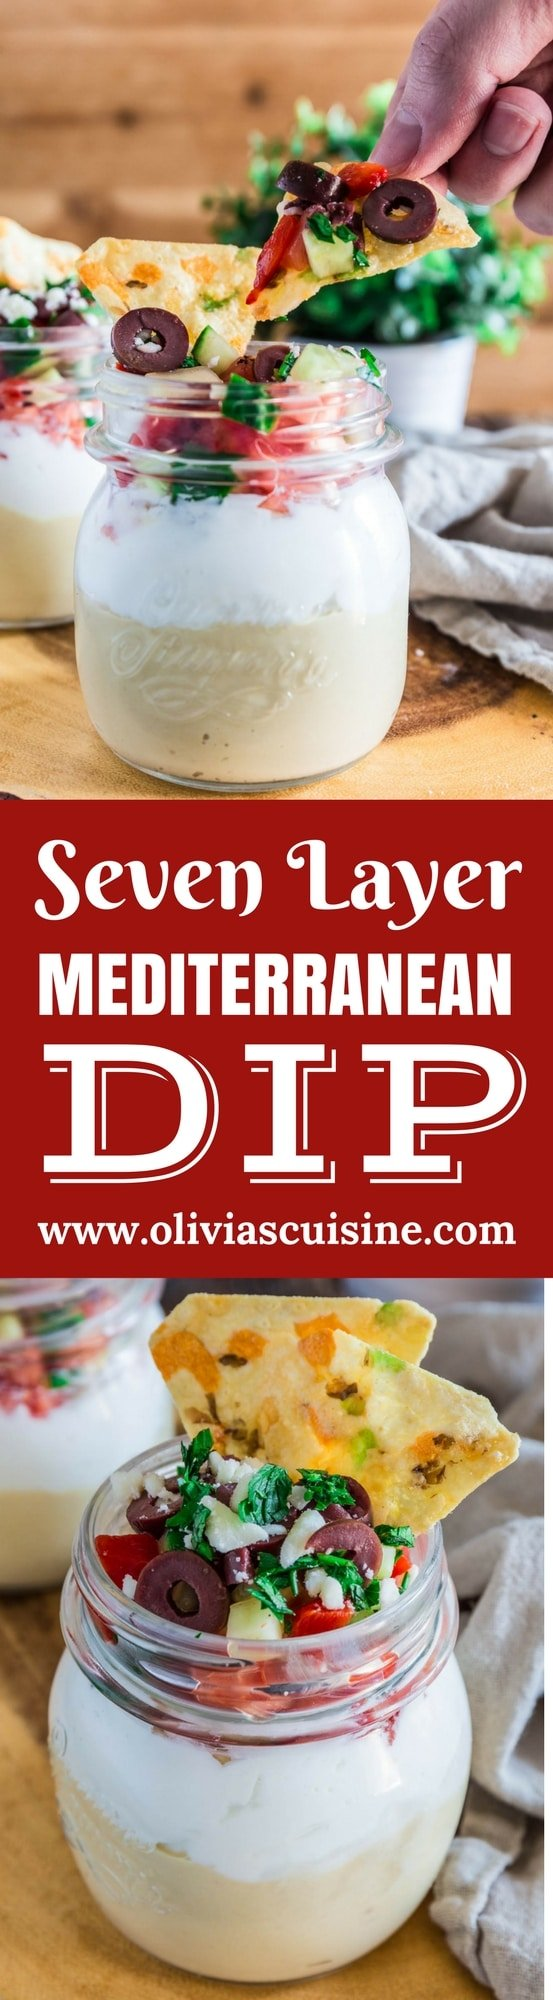 Seven Layer Mediterranean Dip | www.oliviascuisine.com | Light, healthy and perfect for entertaining during the warm weather, this Seven Layer Mediterranean Dip is filled with all the greek flavors we all love: hummus, Greek yogurt, veggies, feta and olives. I like to serve it in individual cups so it stays fresh and nobody needs to worry about double dippers! 😉 (Recipe by @oliviascuisine.)